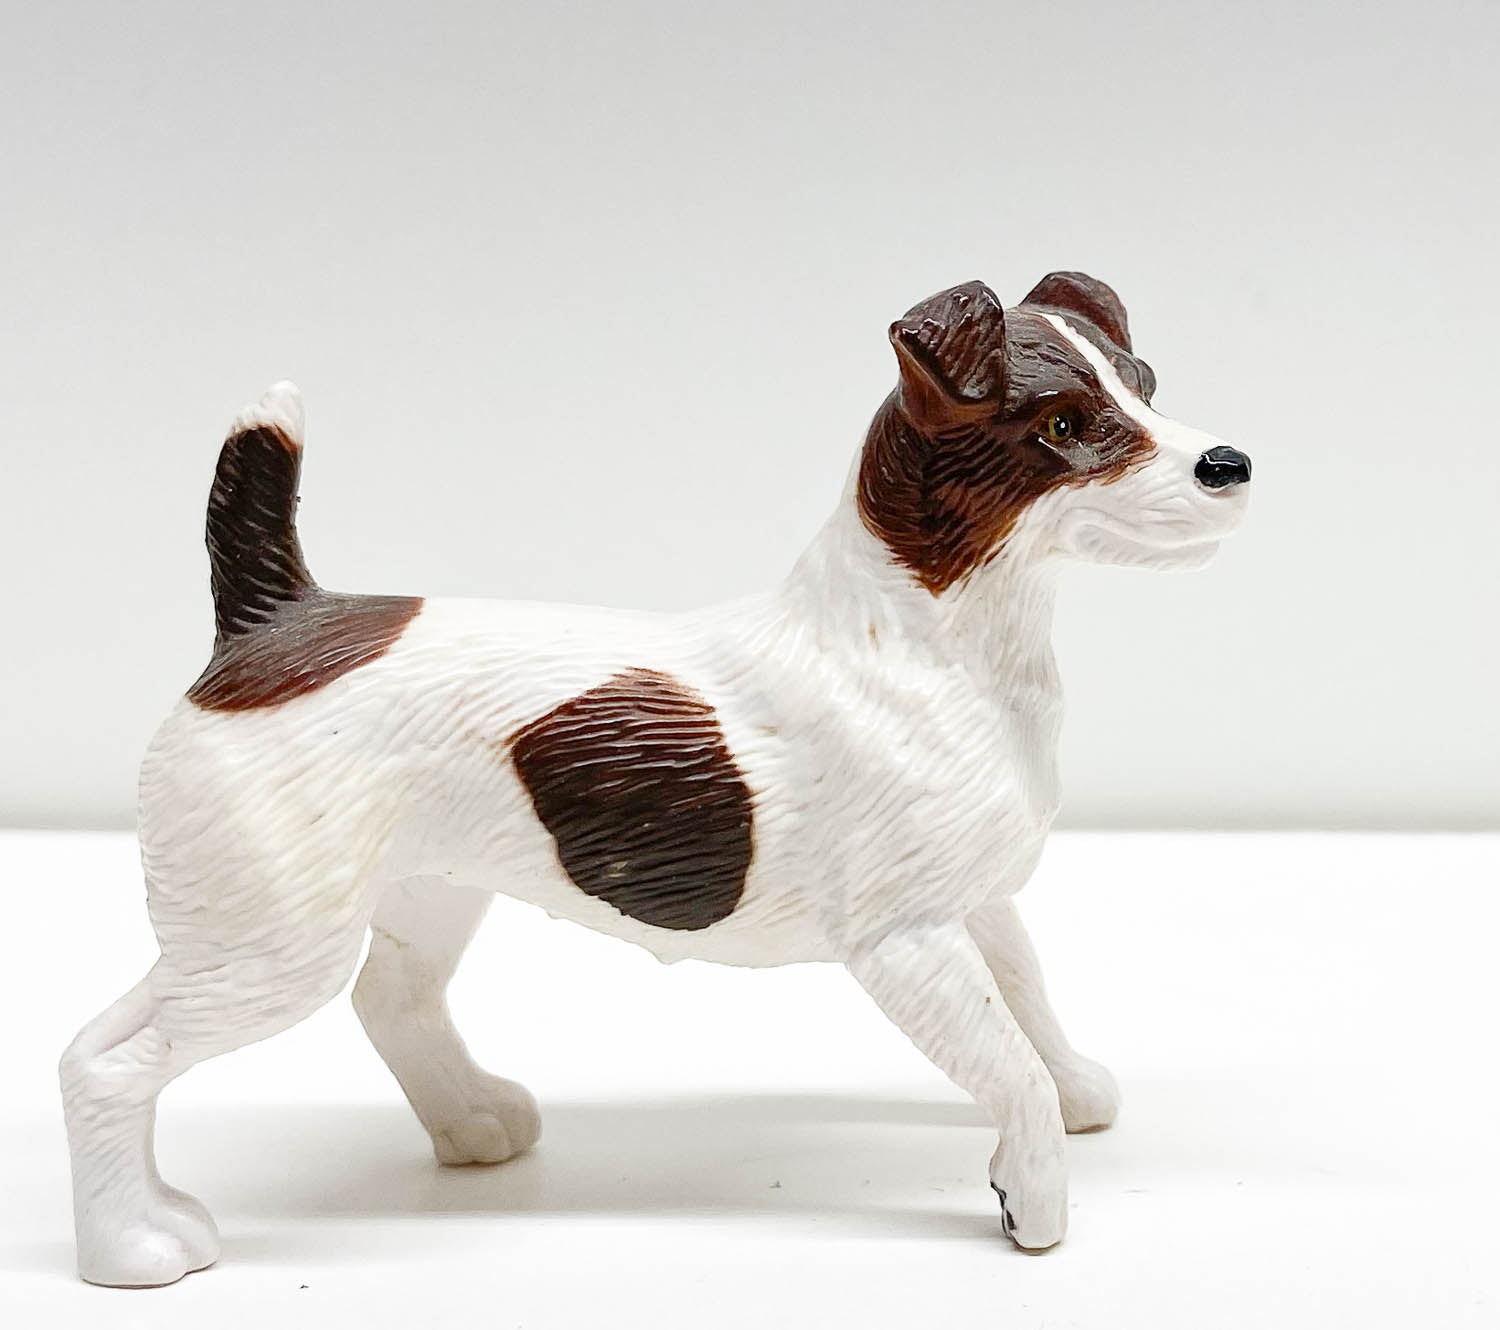 Jack Russell Terrier, Chocolate & White - Original Release